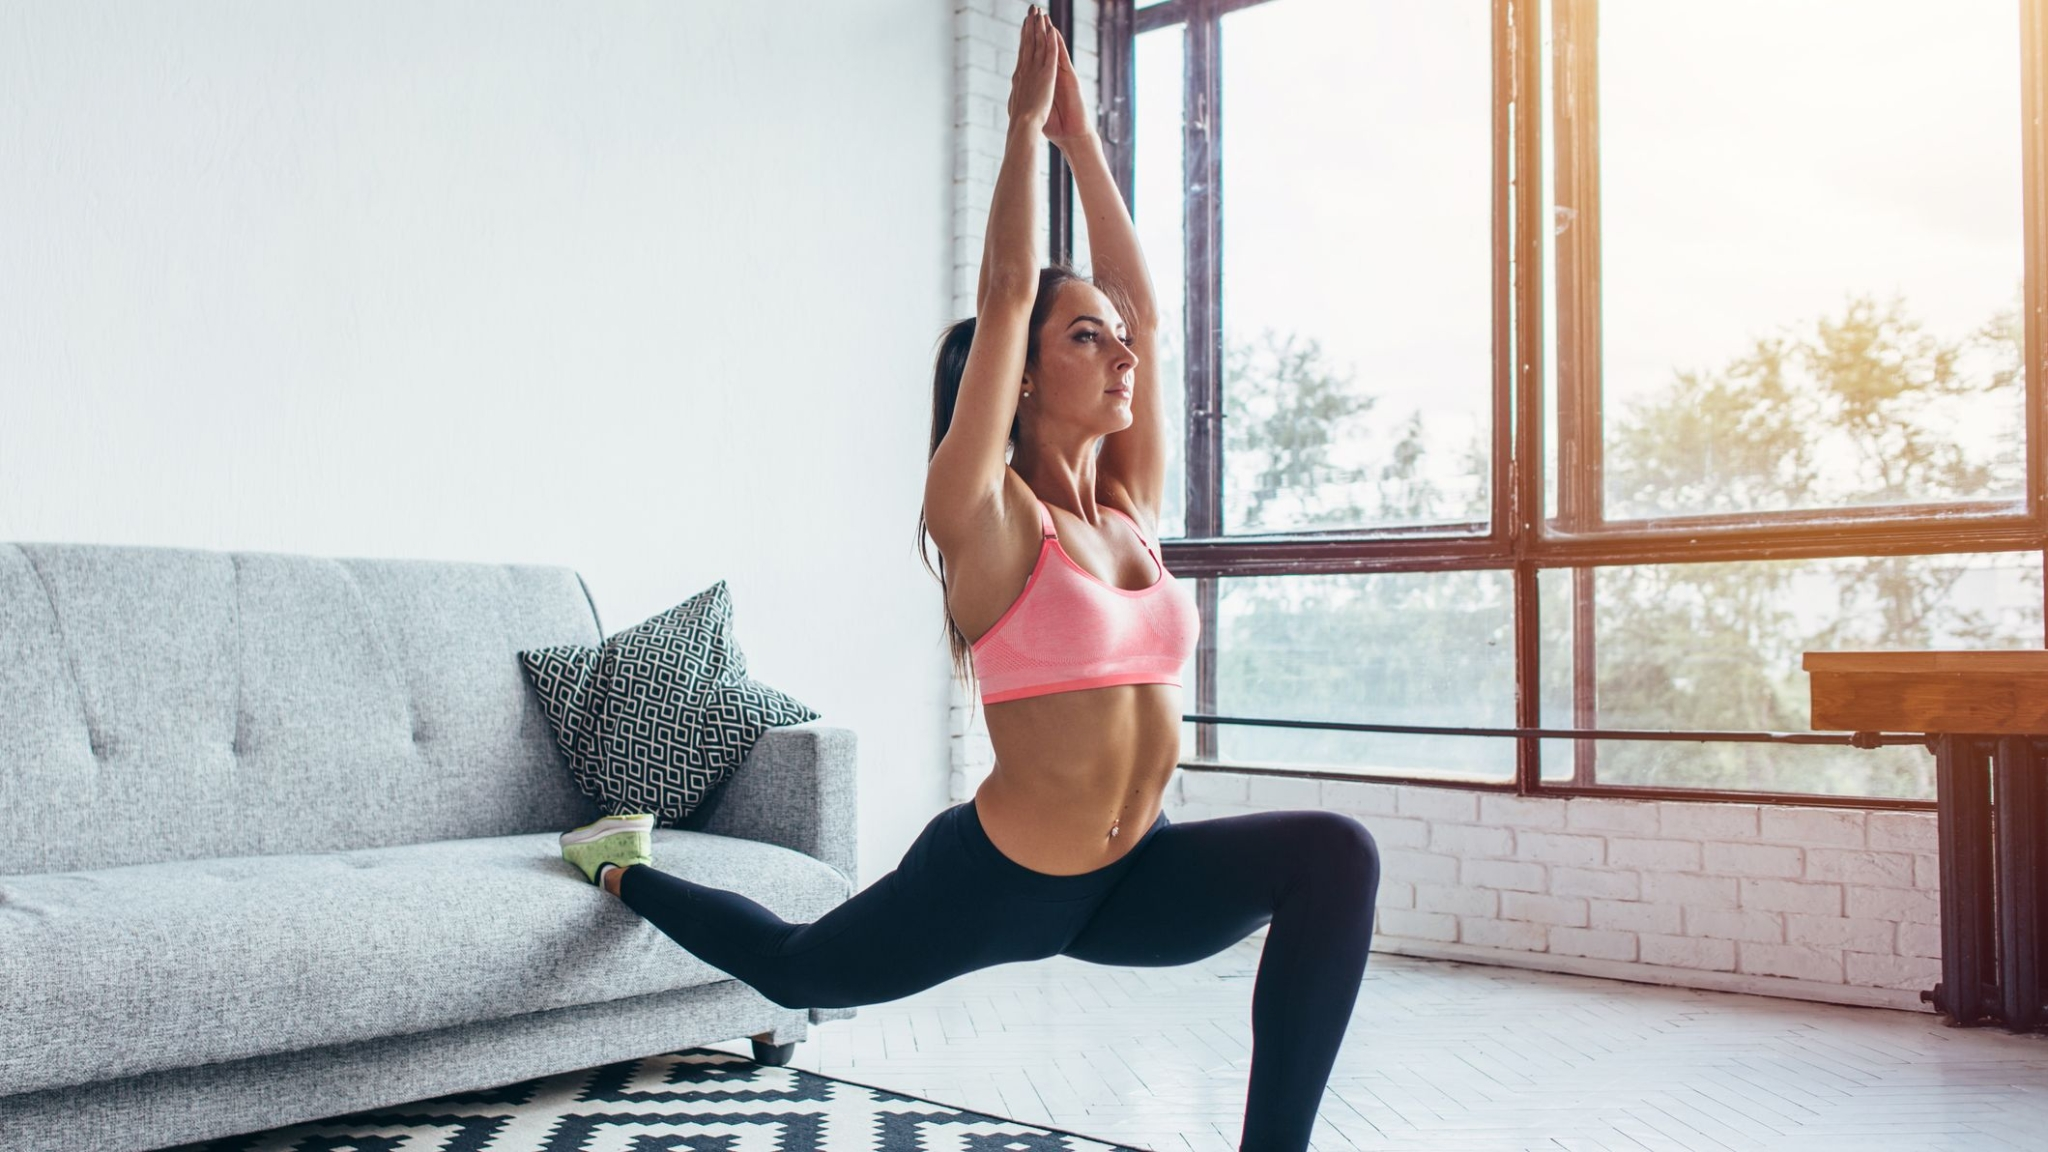 No Time for Gym? No Worries! Working out at Home Just as Effective